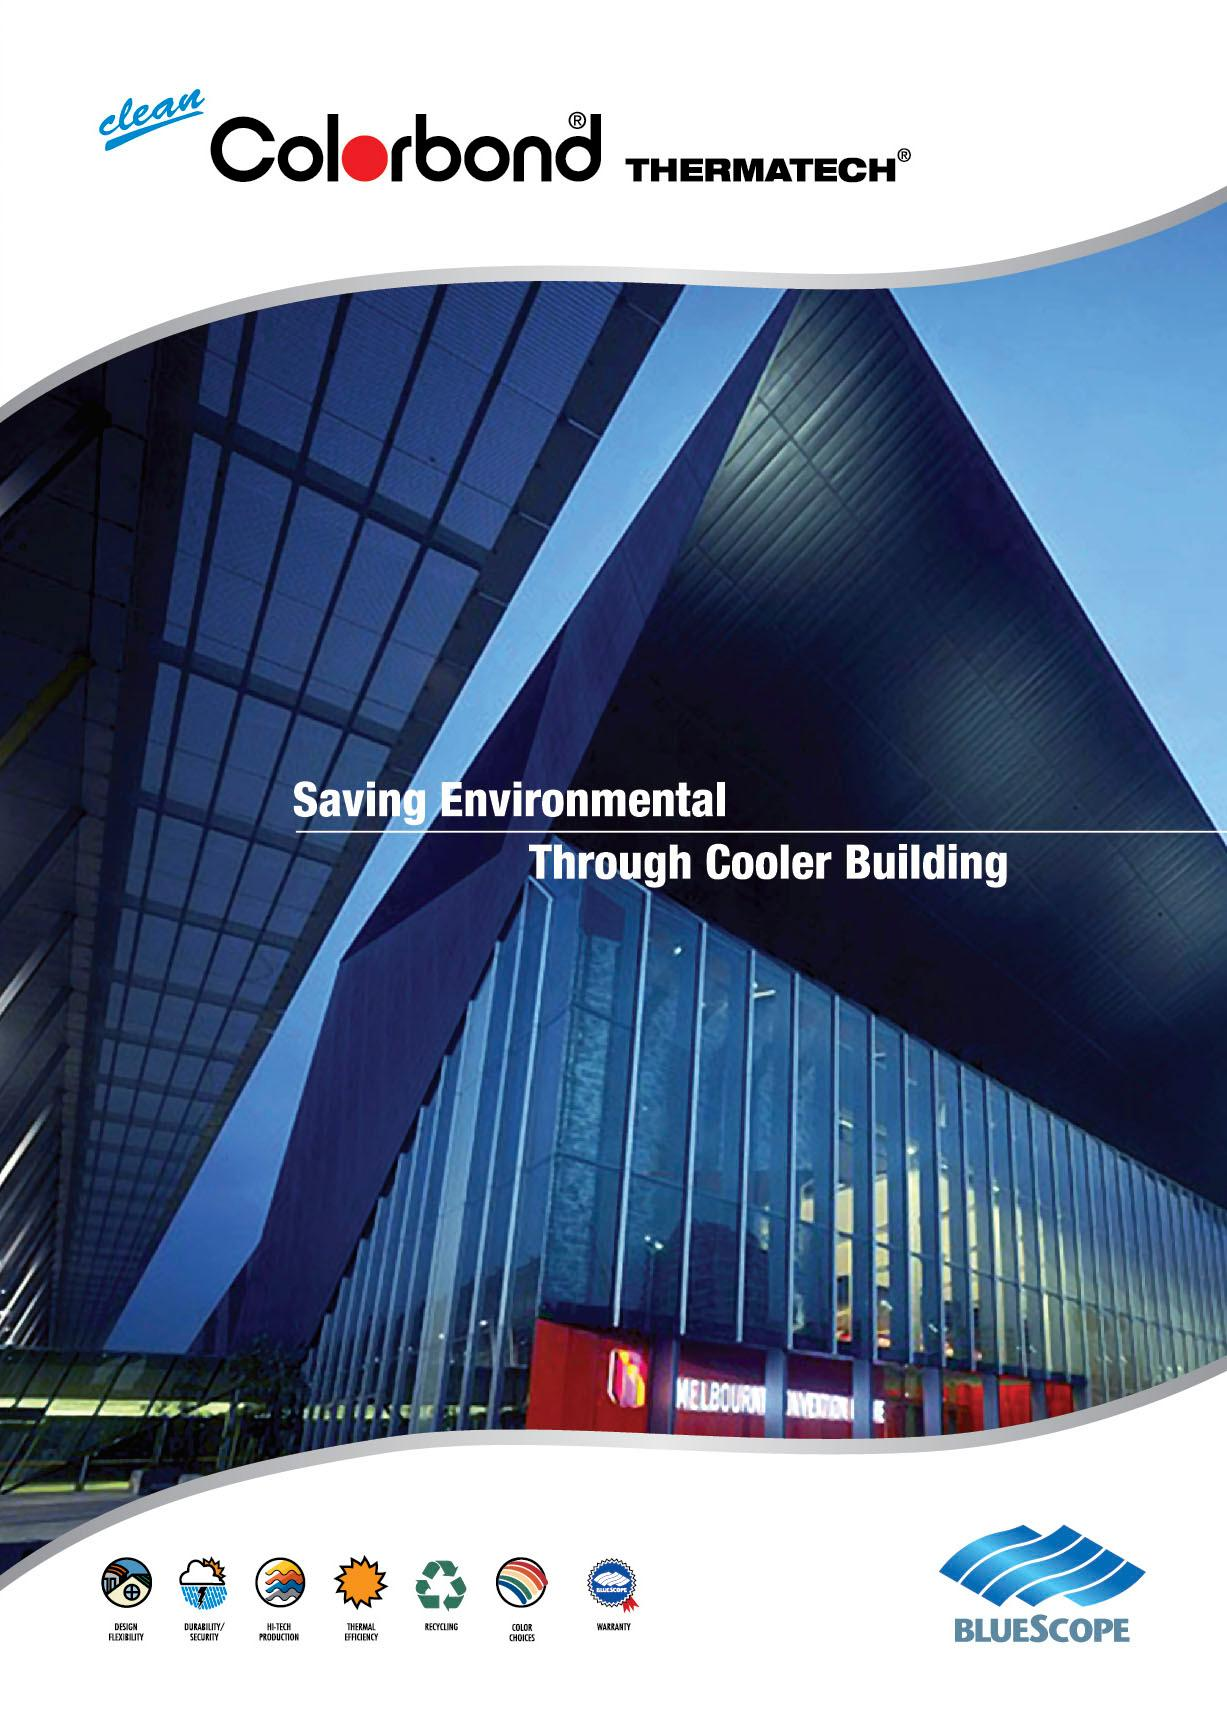 CLEAN COLORBOND® THERMATECH®